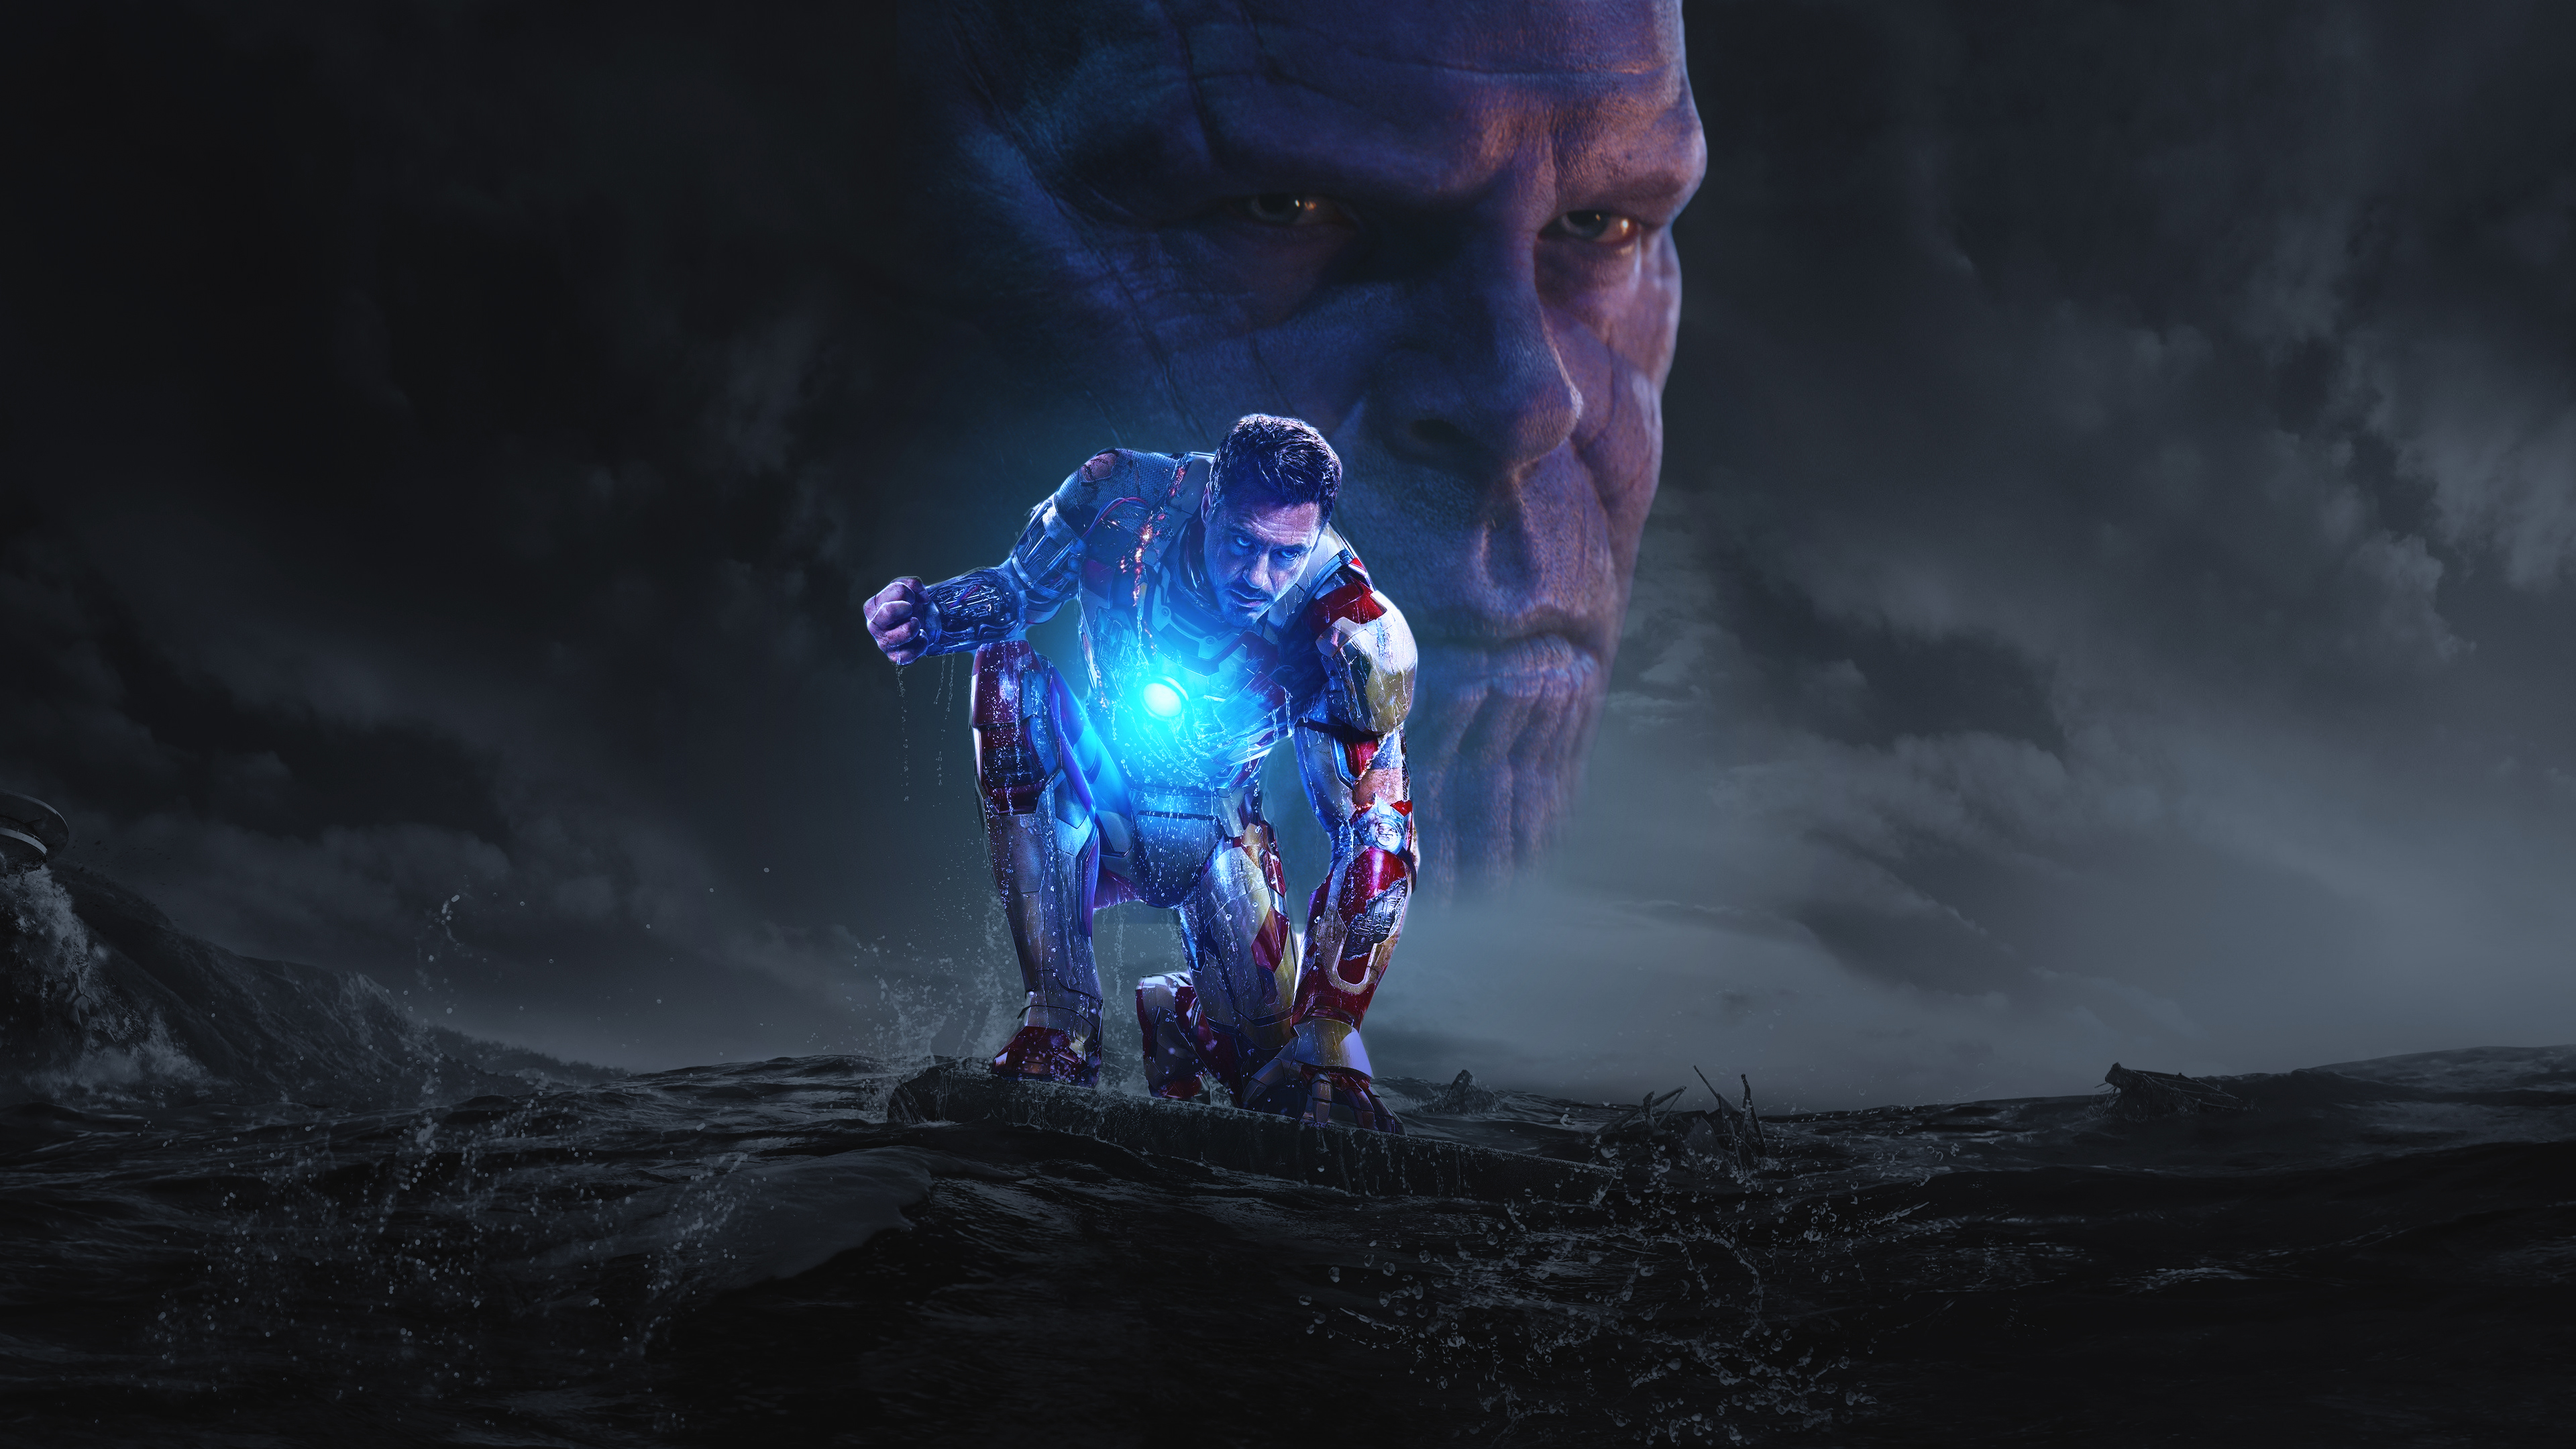 Wallpaper 4k Iron Man And Thanos In Avengers Infinity War 2018